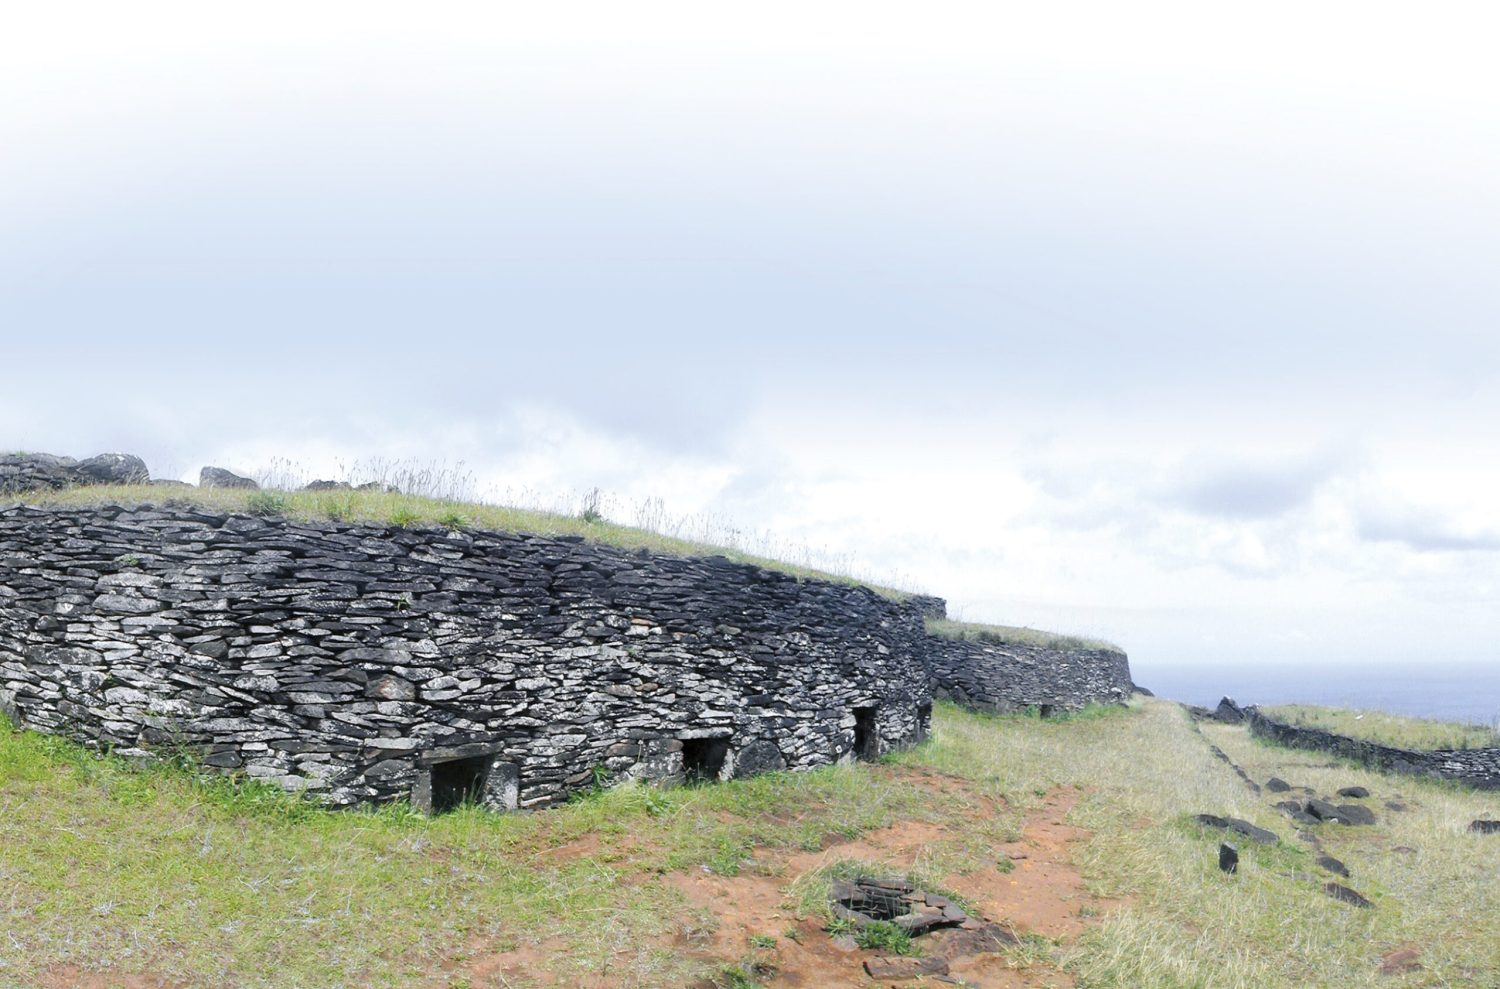 below Stone houses of Orongo village, constructed of dry-laid basalt slabs. The foreground four-entrance house, called Taura Renga, once sheltered the moai called Hoa Hakananai'a.